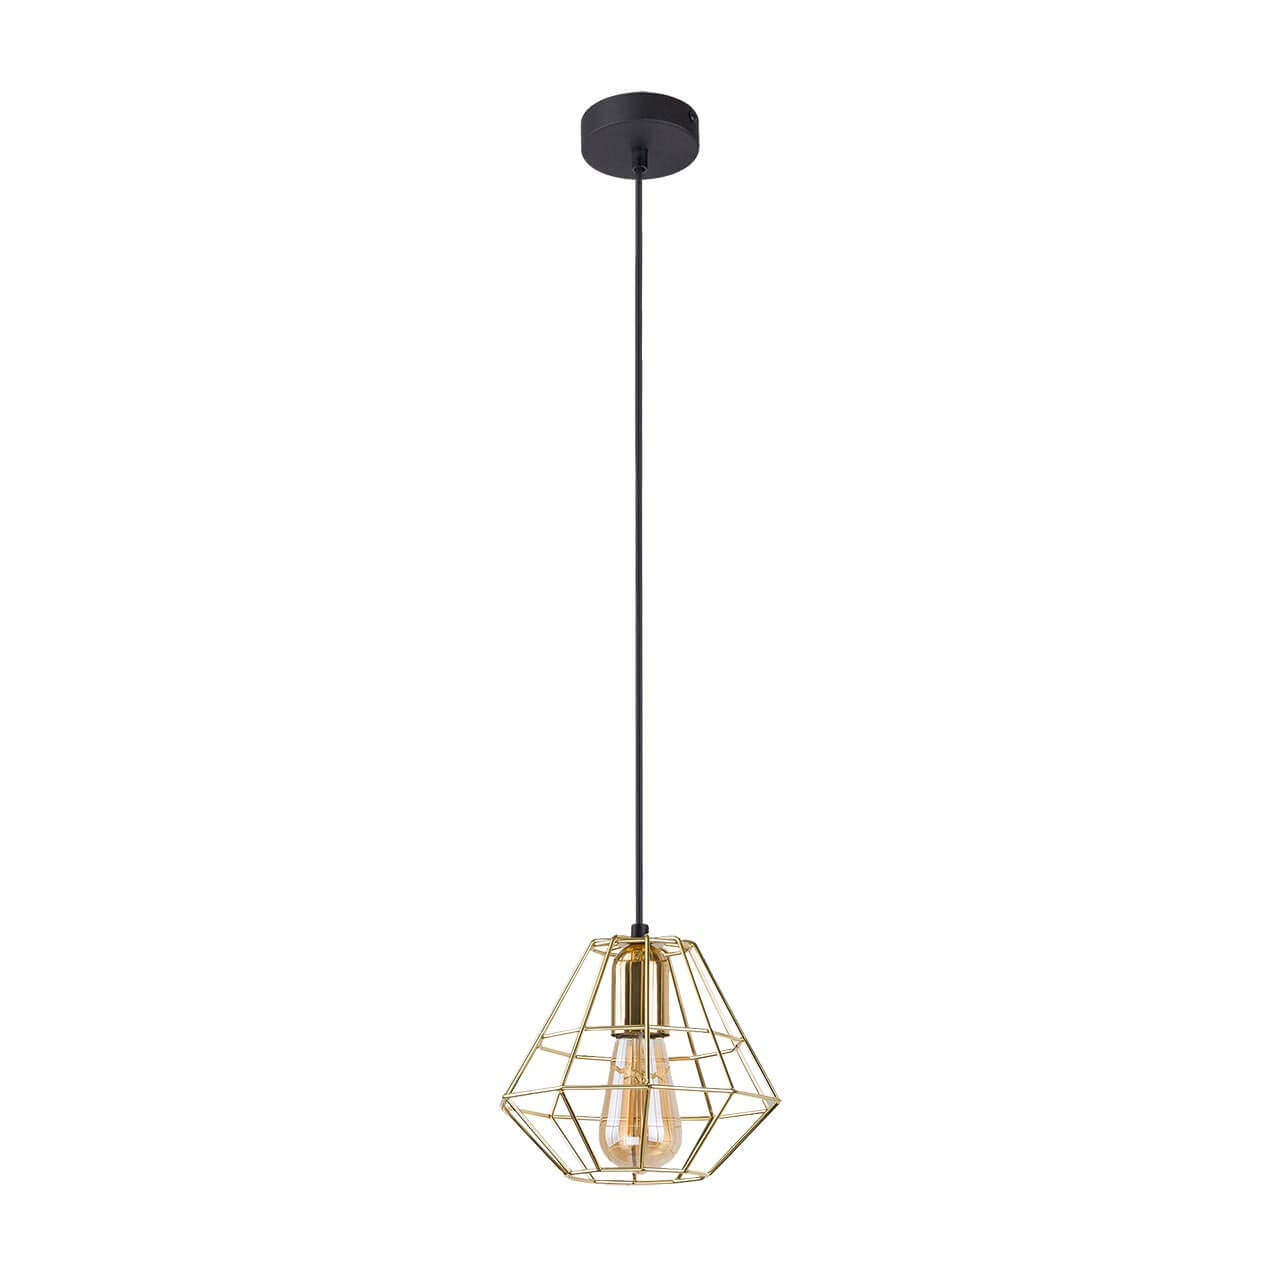 Светильник TK Lighting 2575 Diamond Gold Diamond Gold светильник подвесной tk lighting diamond 696 diamond 1